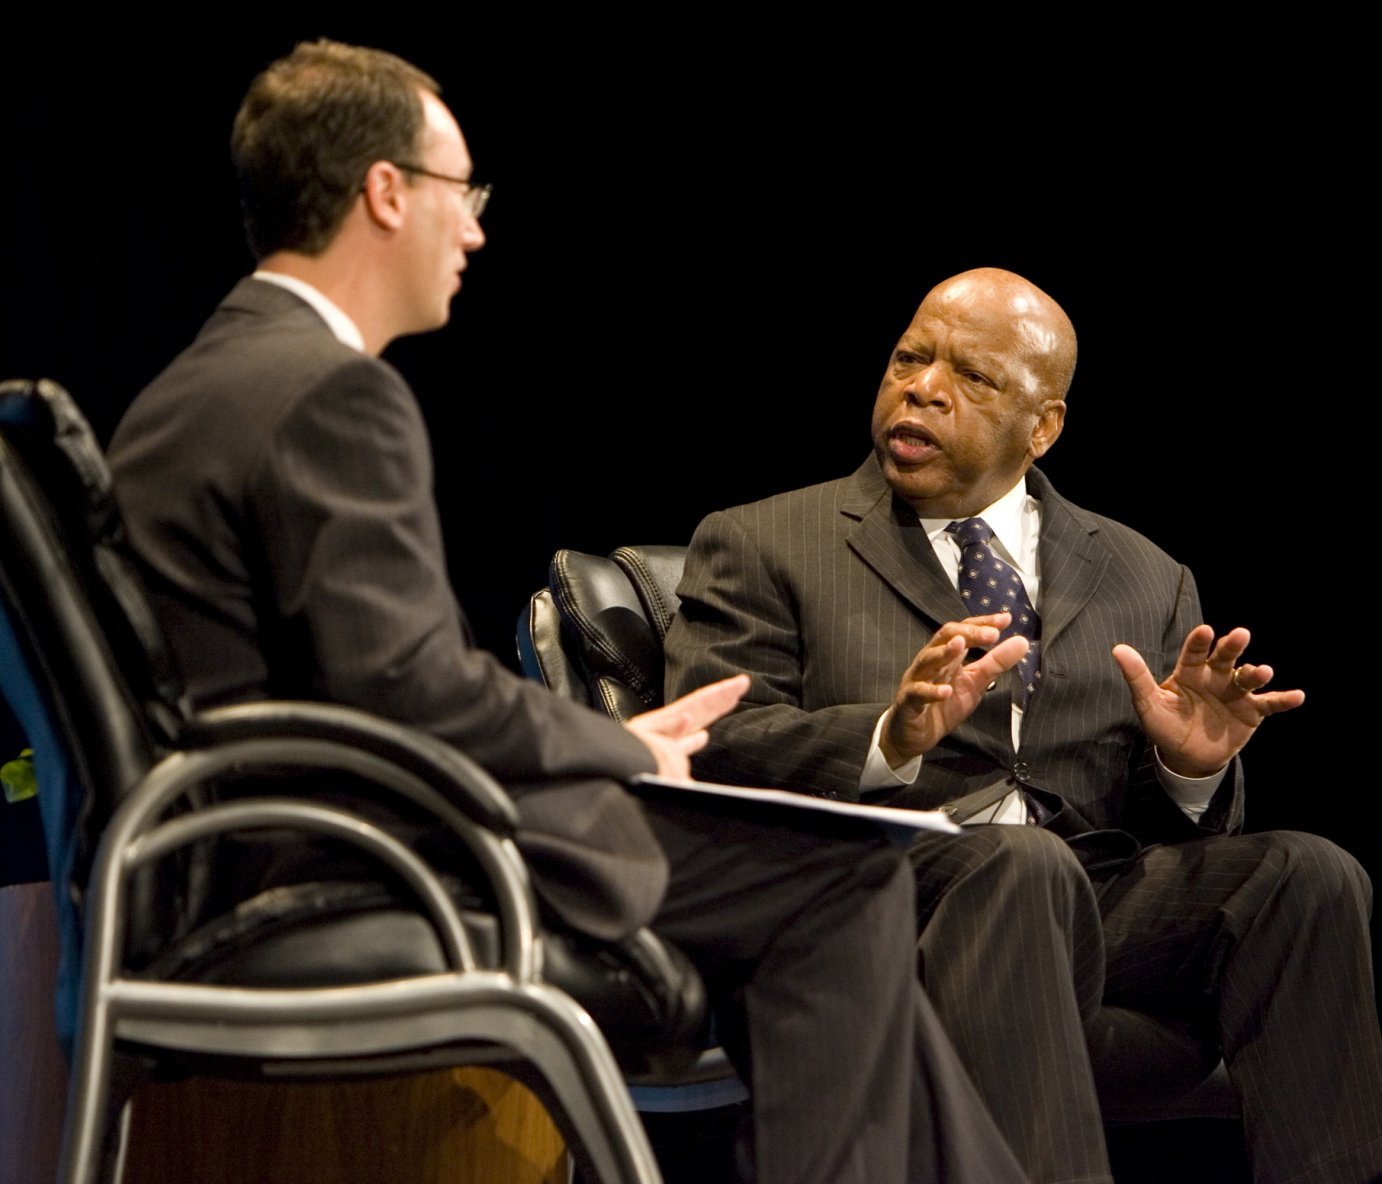 Congressman John Lewis with Dr. Jonathan Earle, then acting director of the Dole Institute of Politics